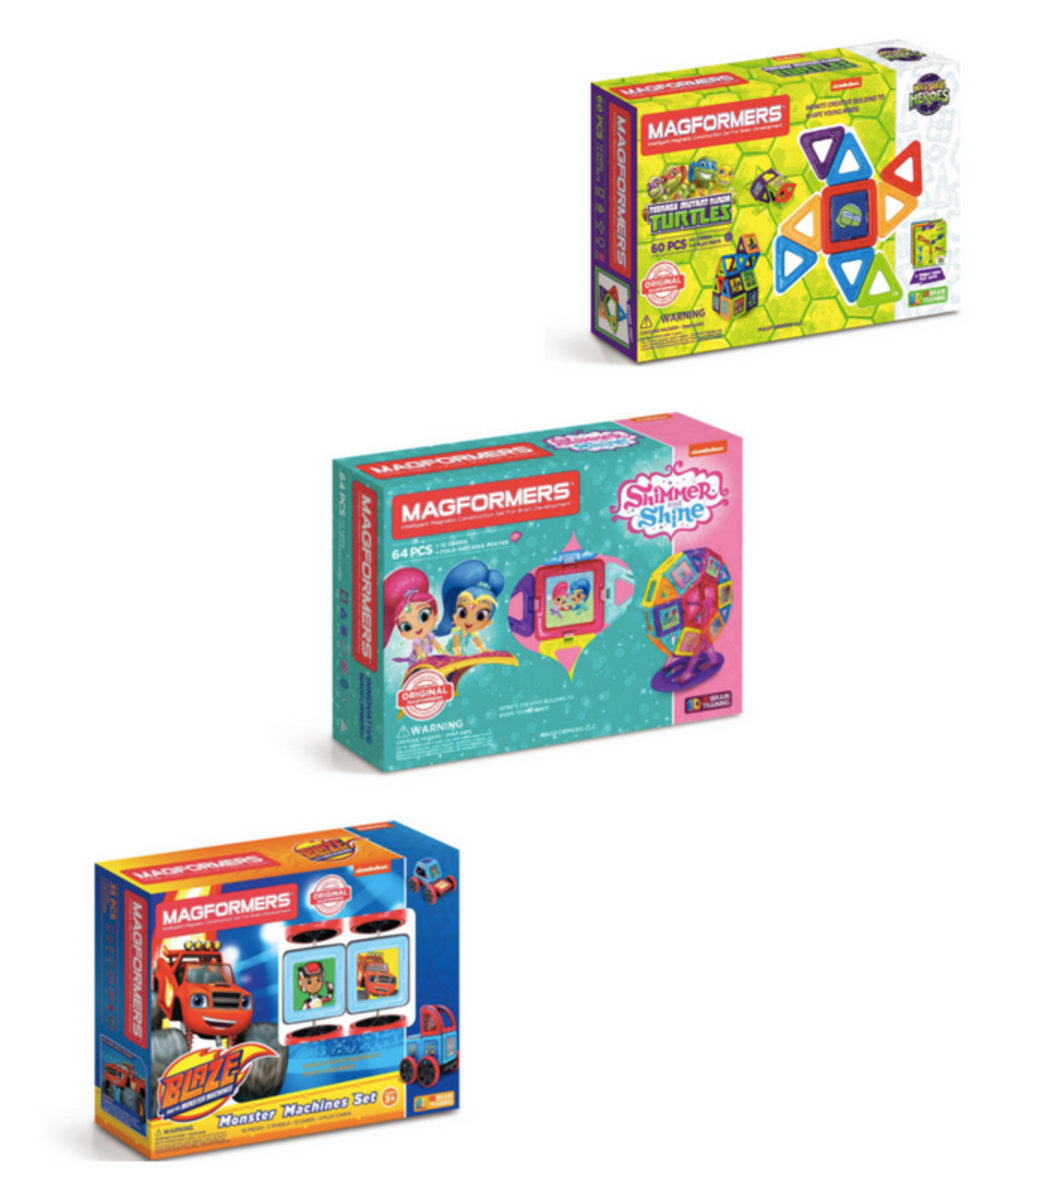 magformers, easter giveaway, easter, gifts for easter, basjet ideas